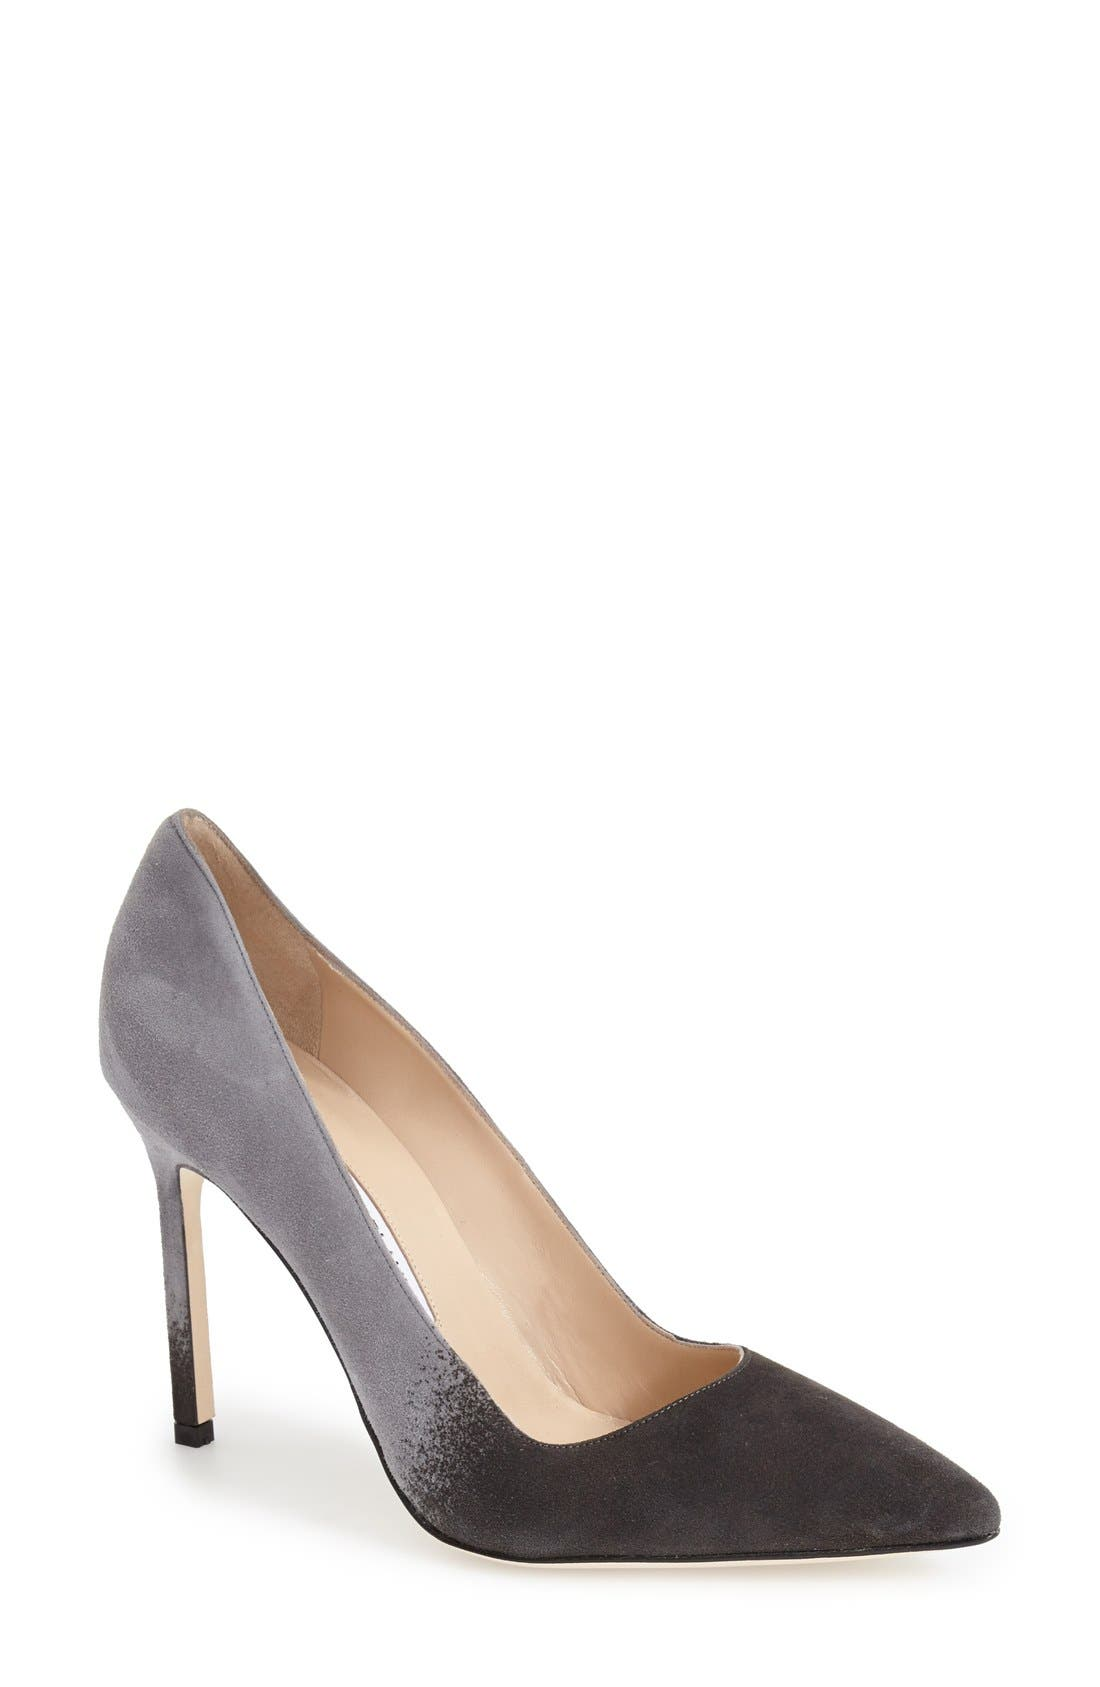 BB Pointy Toe Pump,                         Main,                         color, 001